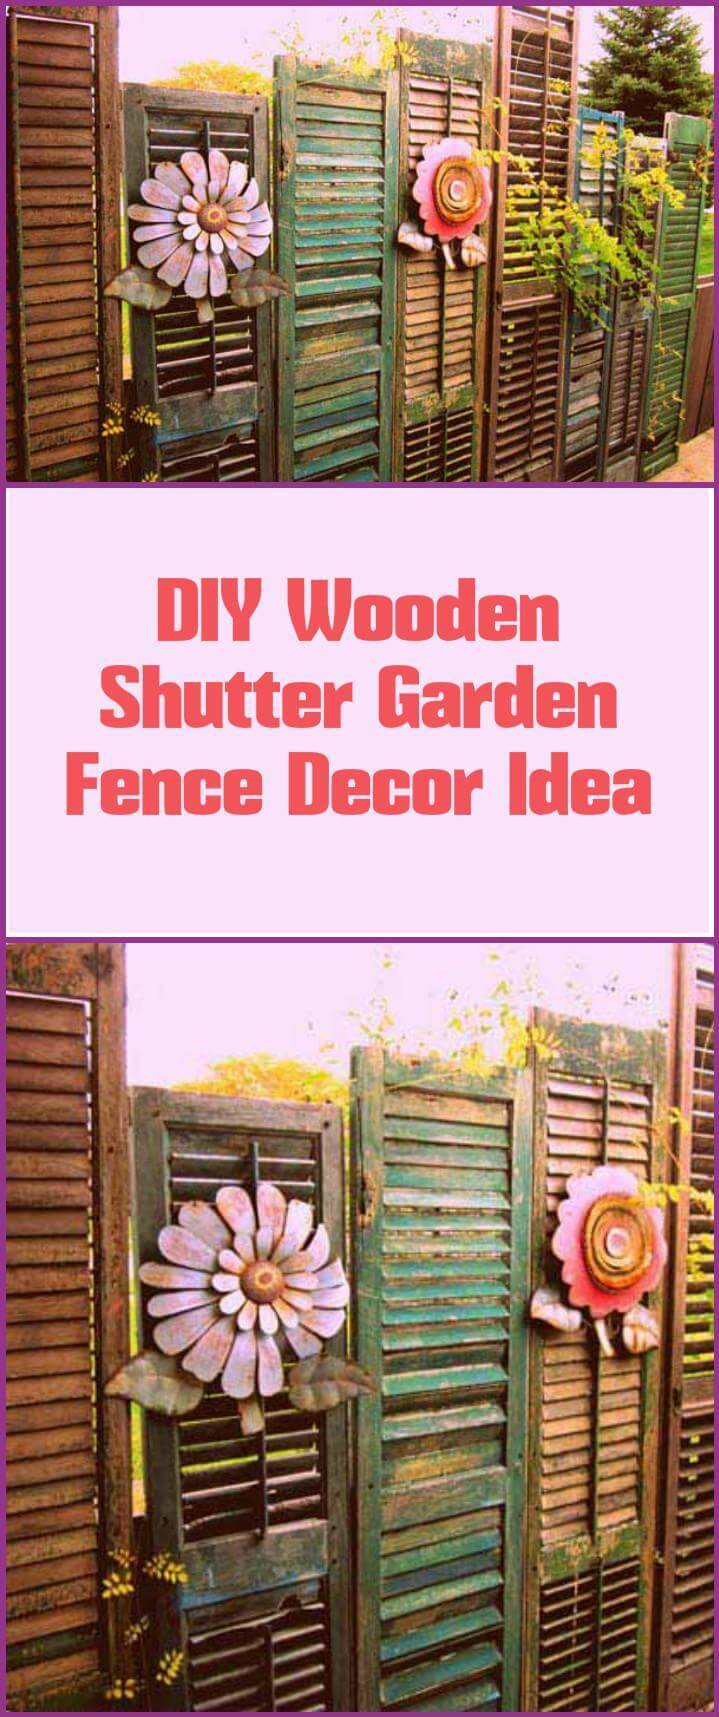 self-made wooden shutter garden fence decor